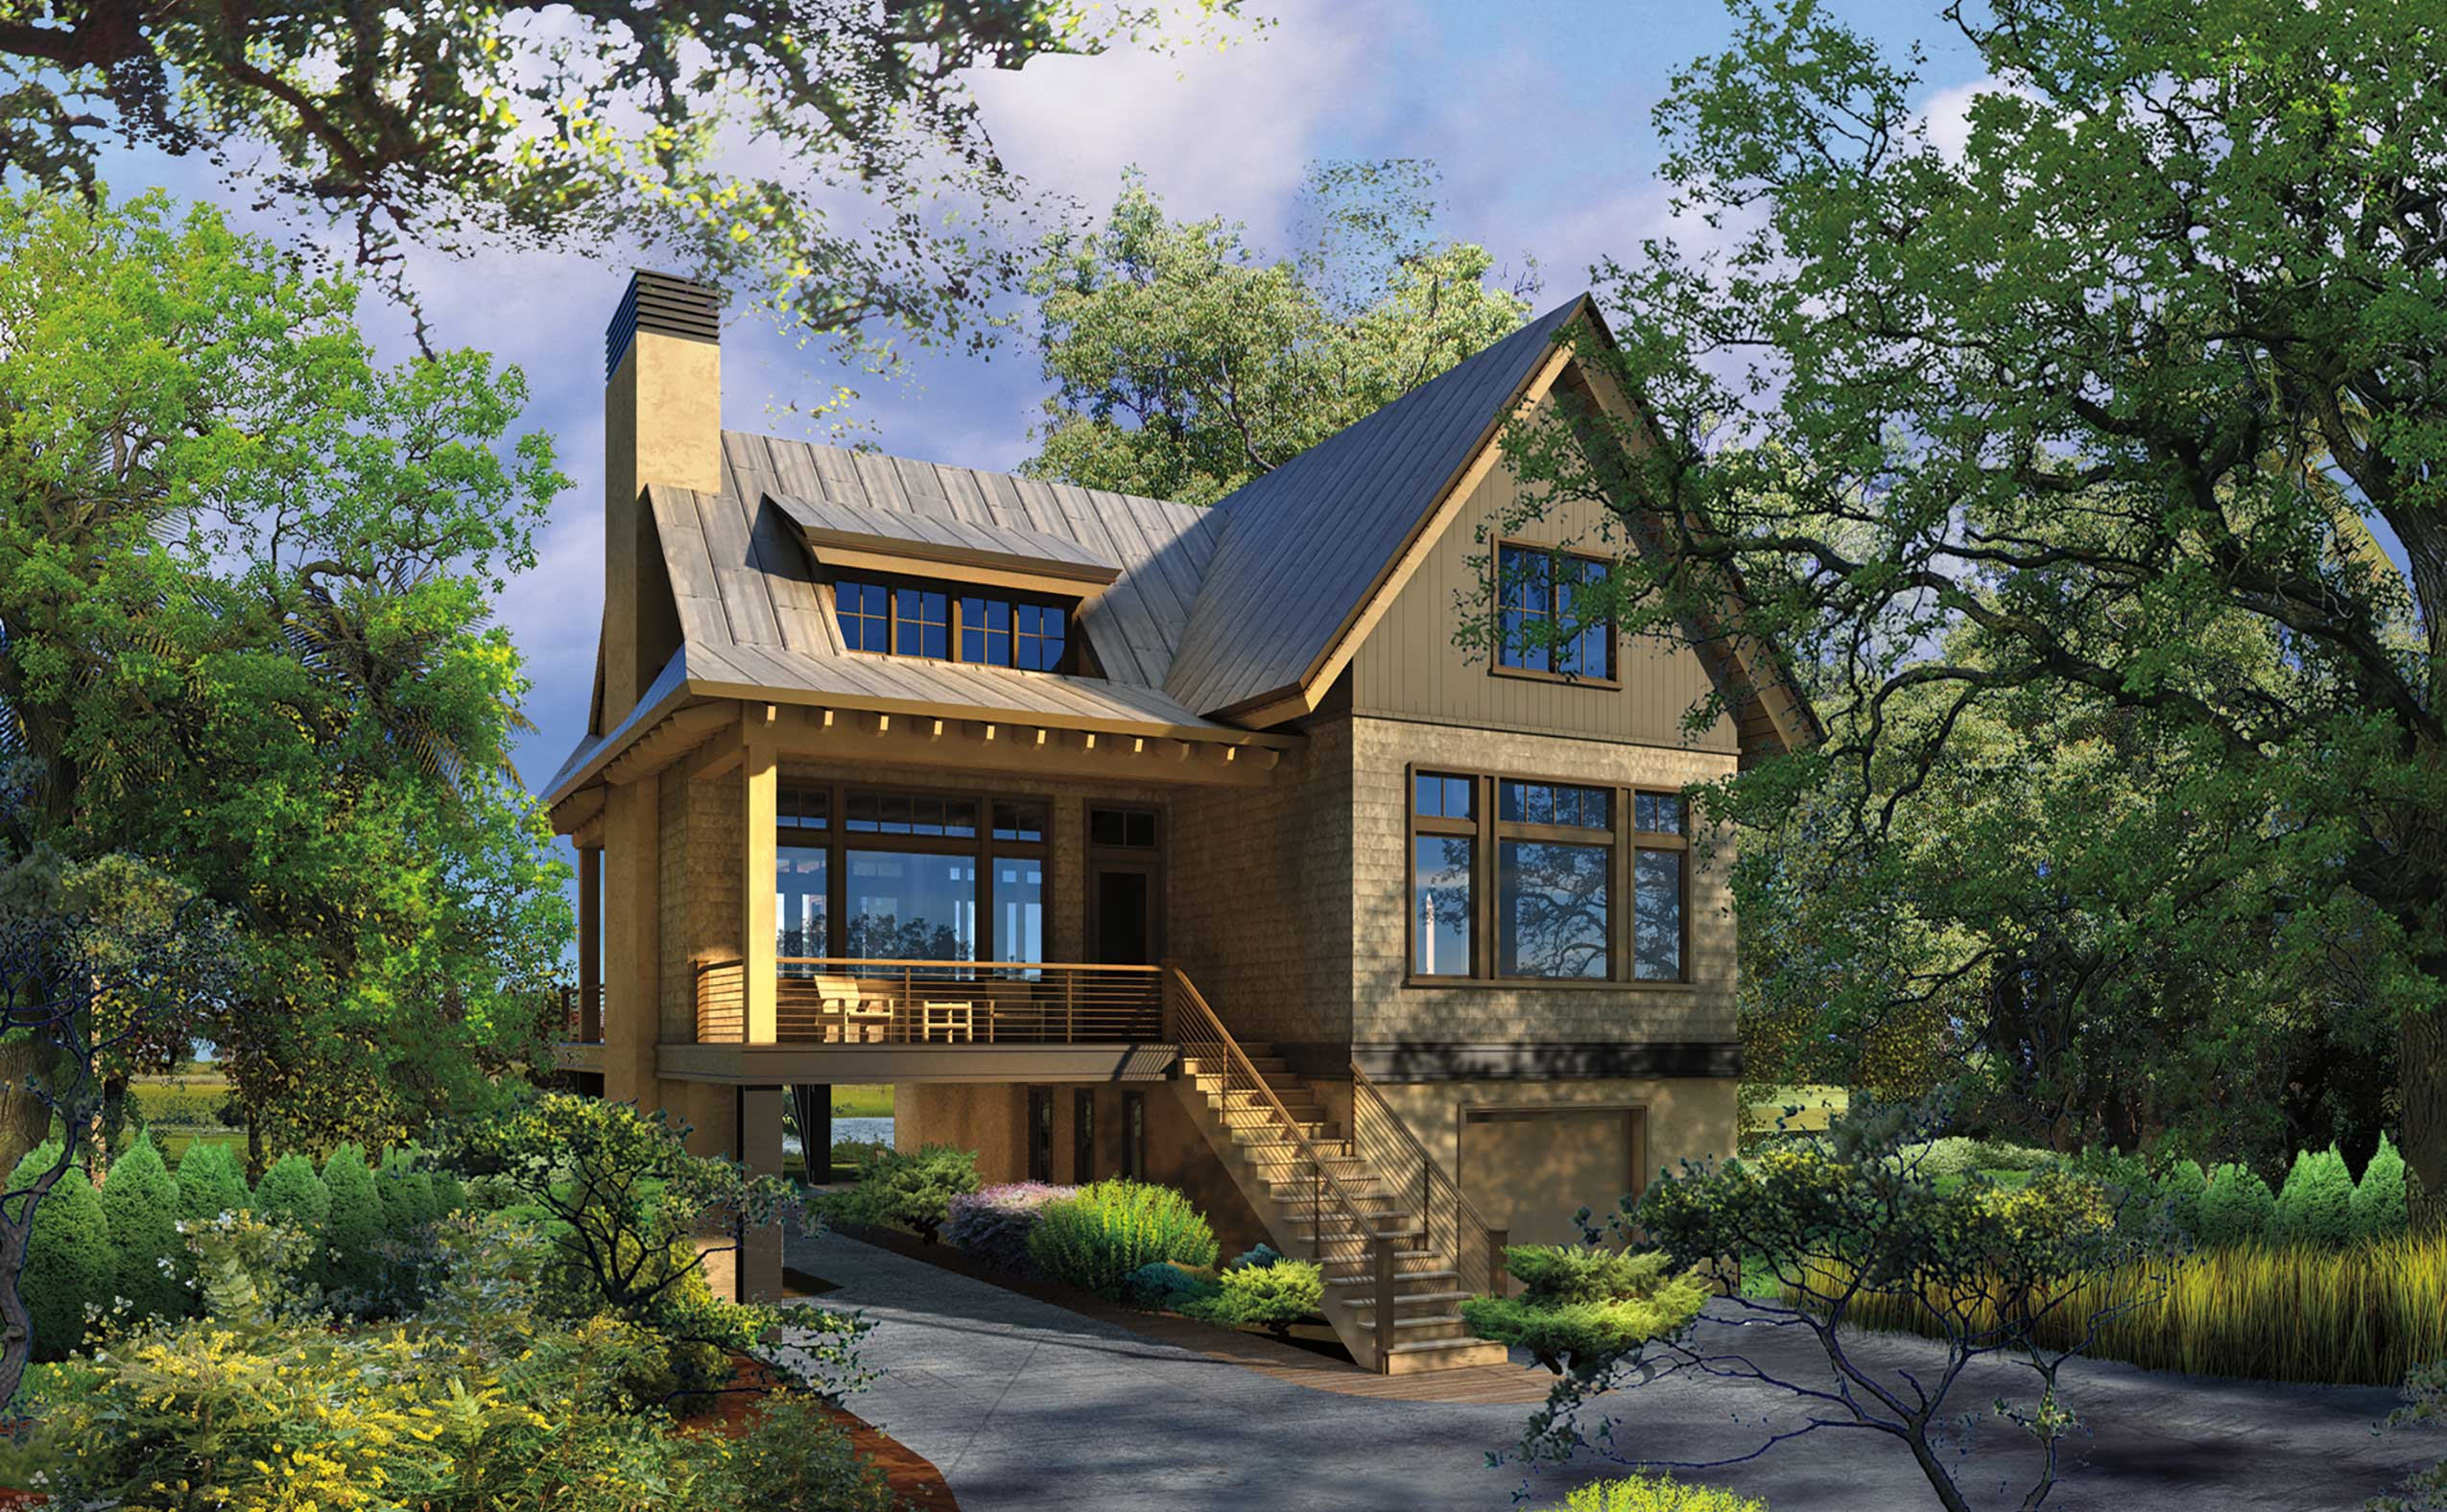 Ocean Park Architect, Kiawah Island Architect